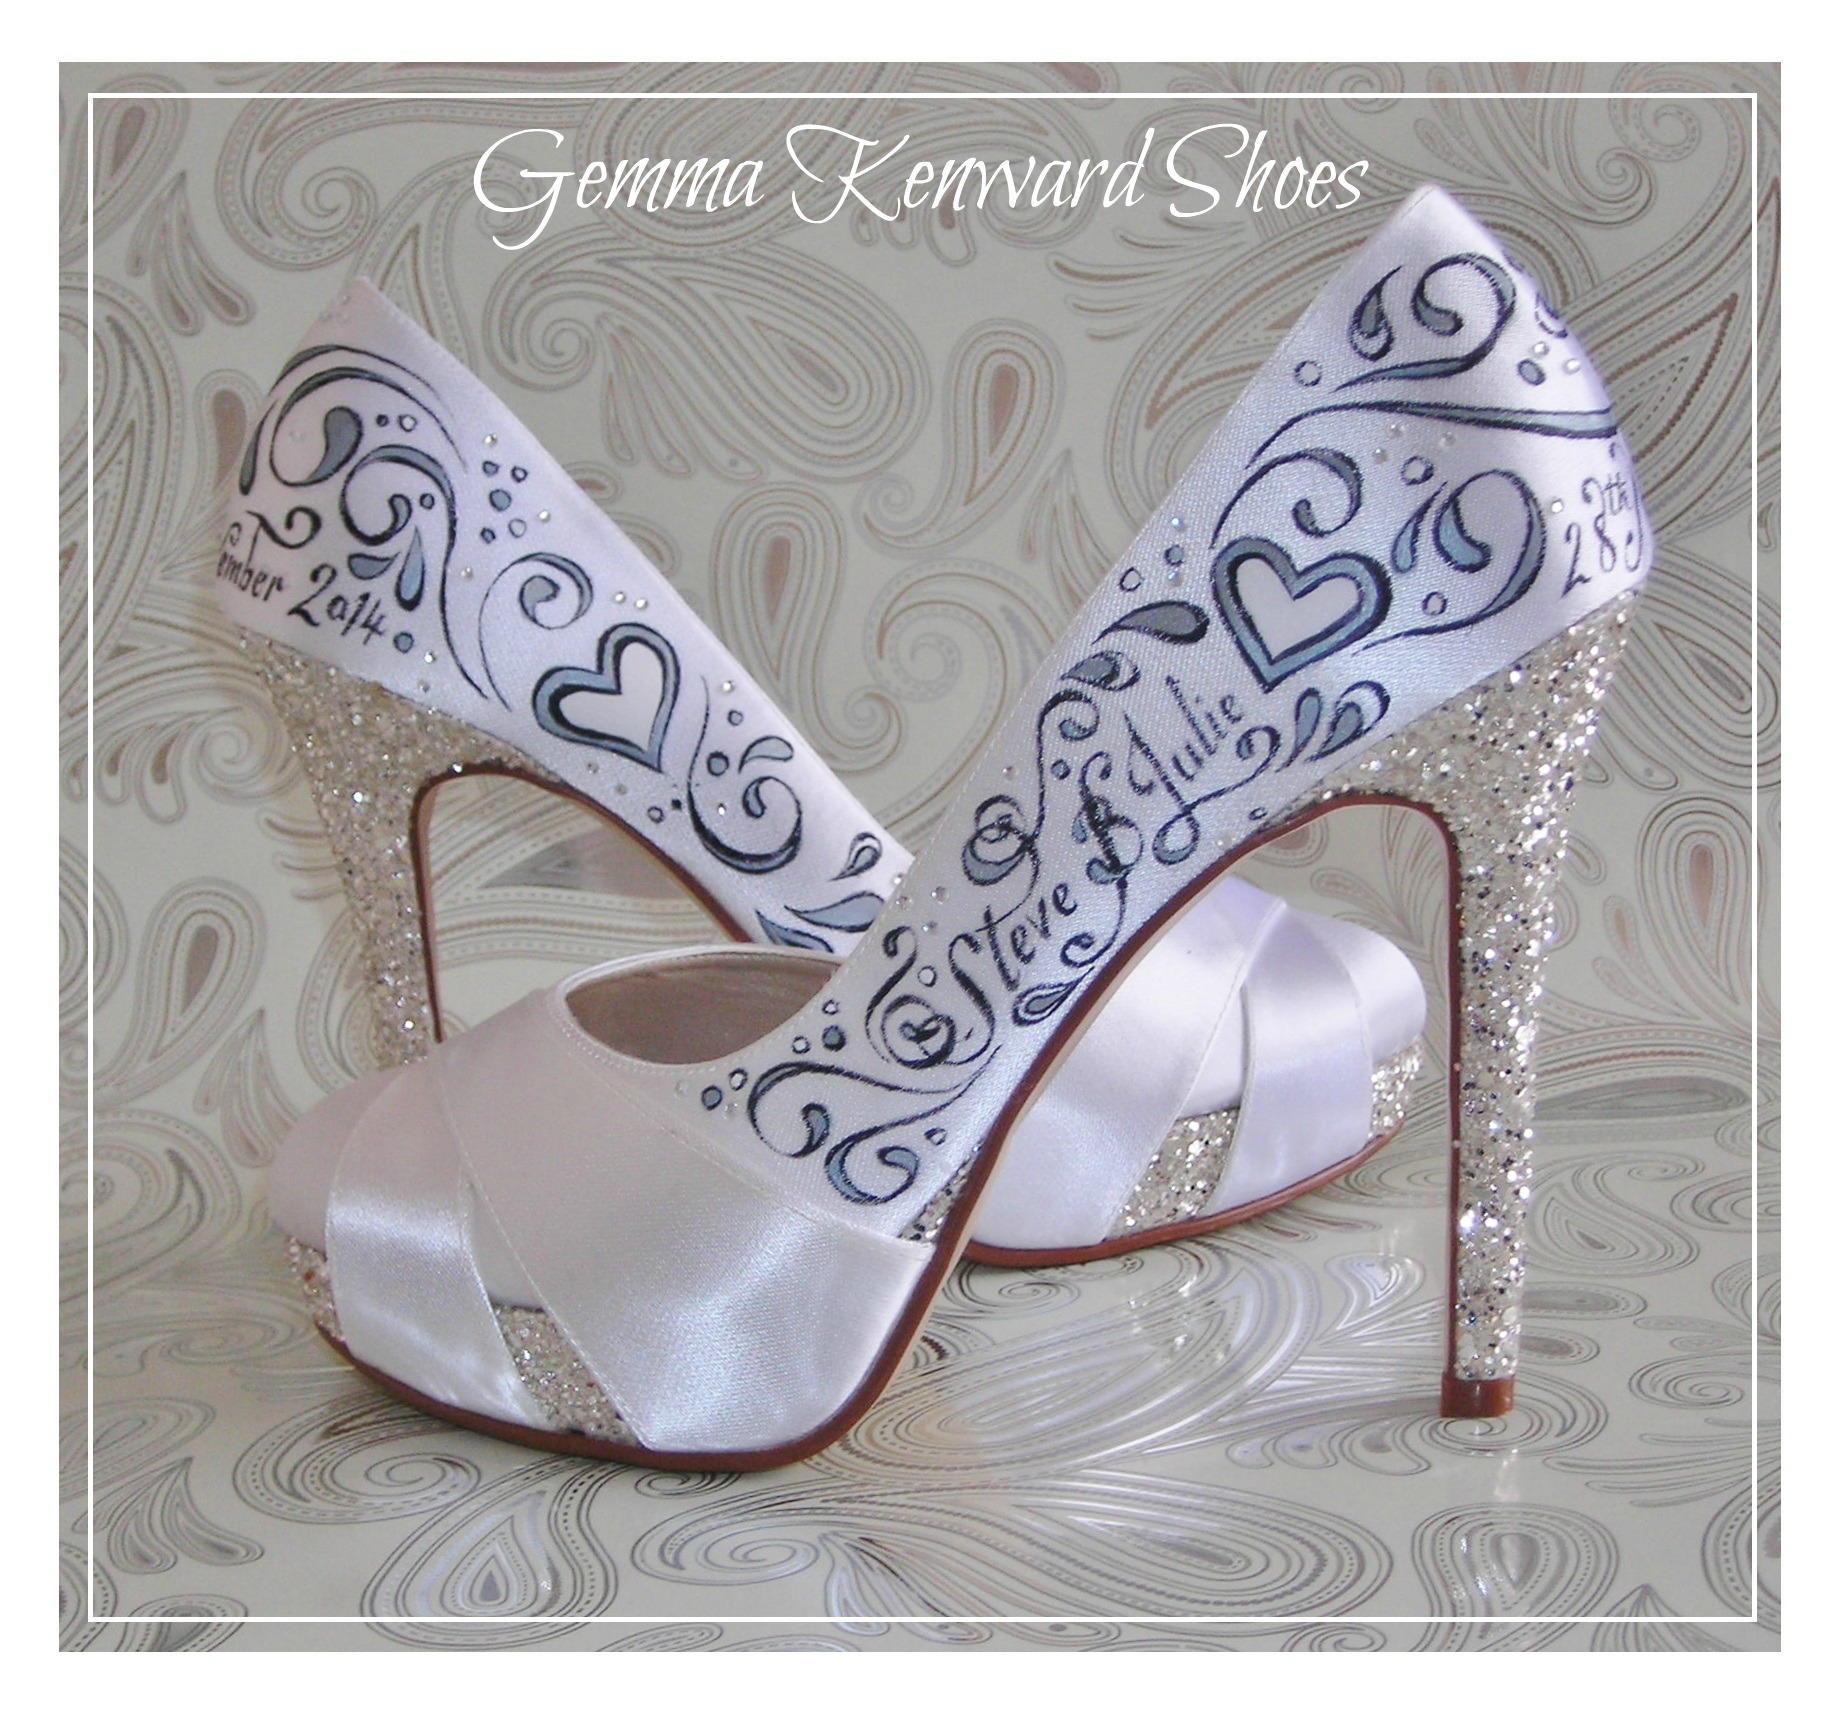 Hand painted wedding shoes for Steve and Julie who get married in November.